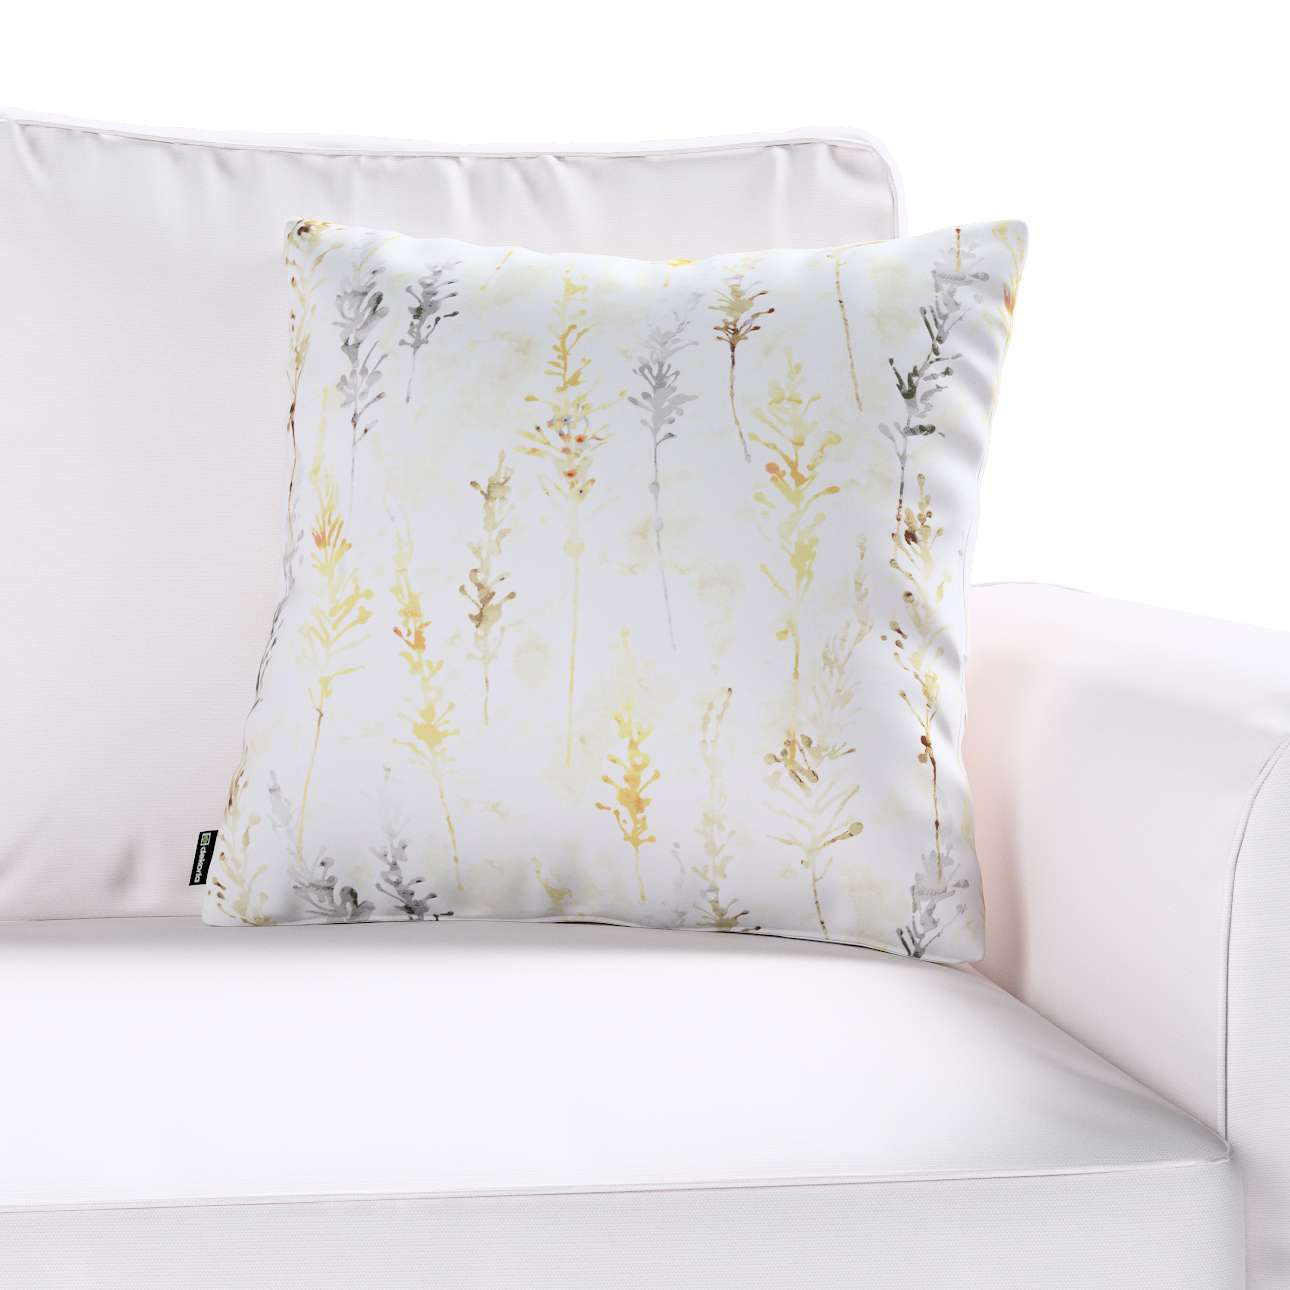 Kinga cushion cover in collection Acapulco, fabric: 141-36